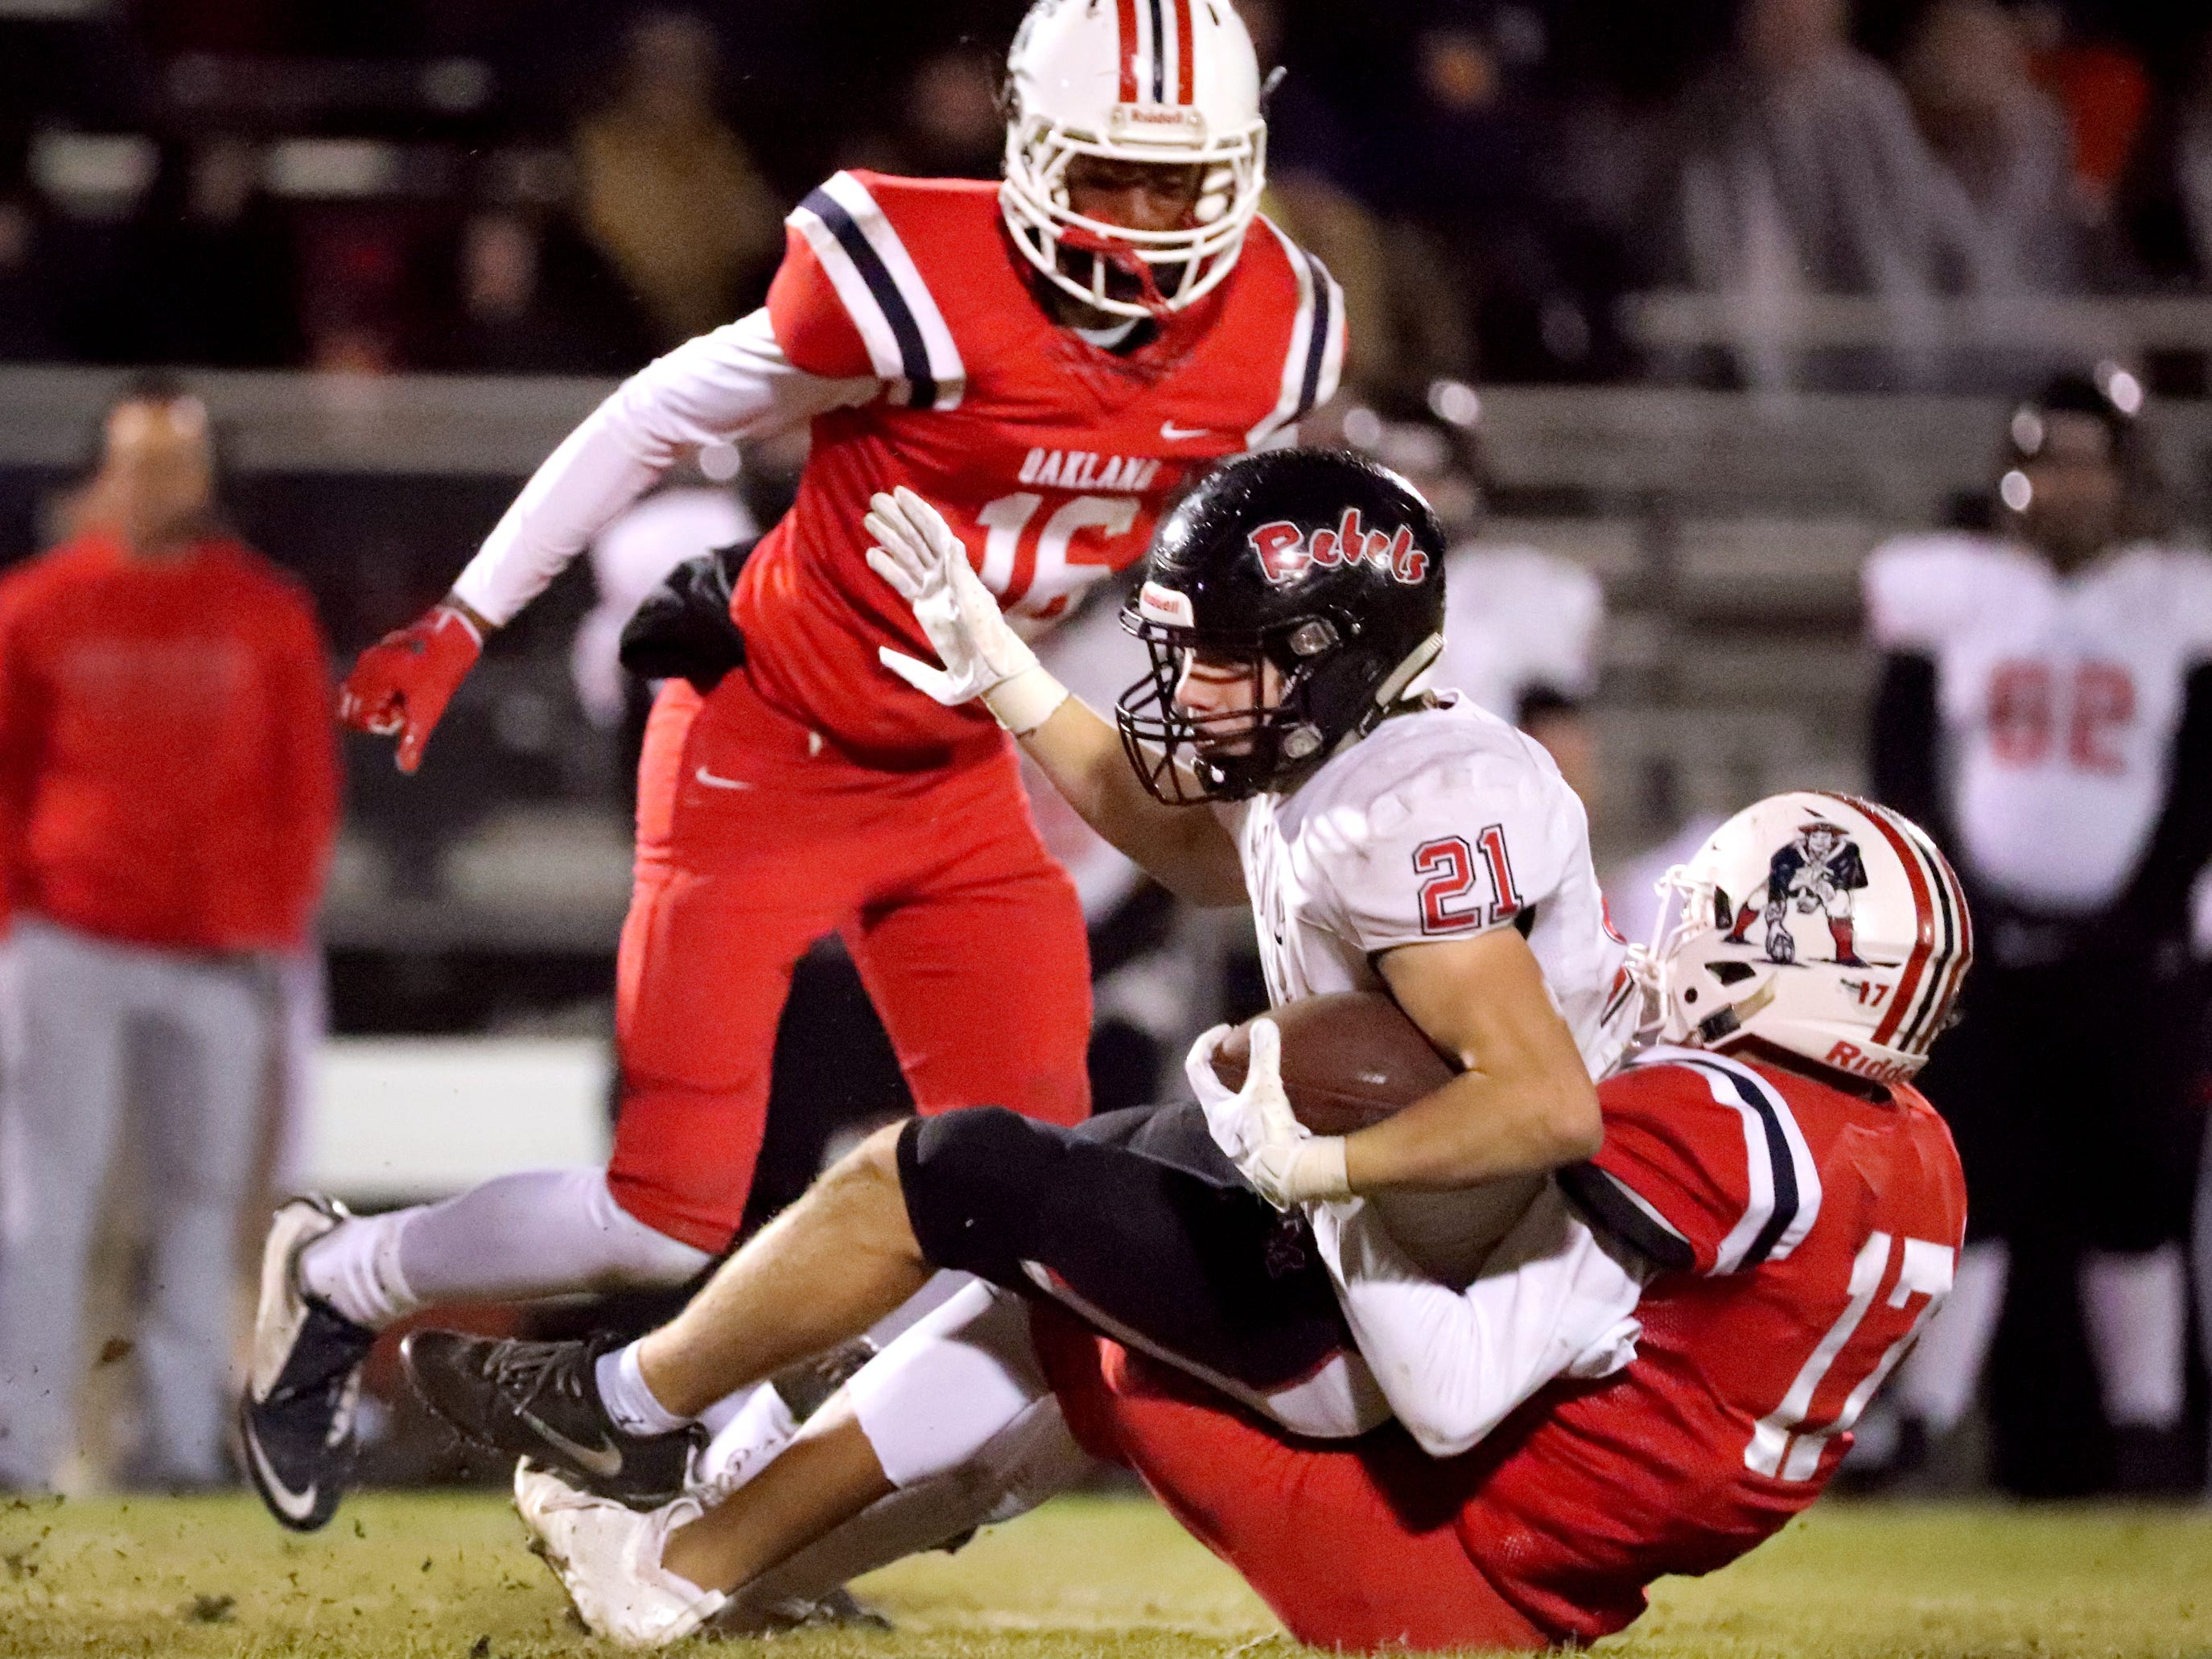 Maryville's Bryson Teffeteller (21) runs the ball as Oakland's Eddie Willis (17) takes him down at Oakland in Murfreesboro, on Friday, Nov. 23 2018, during the 6A playoffs.